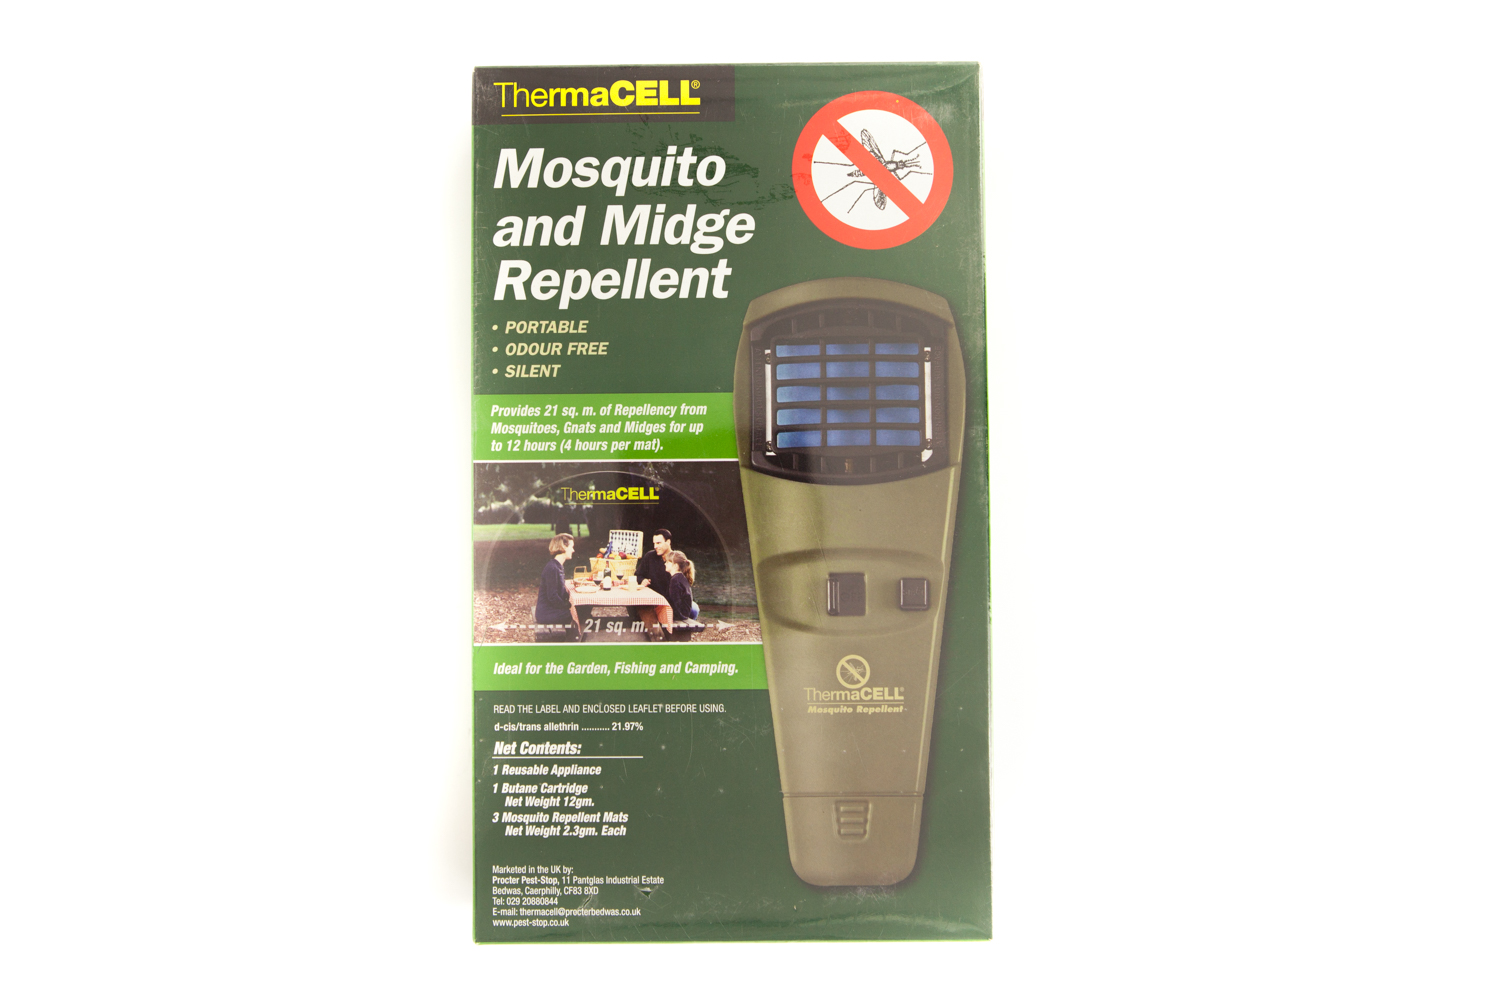 Thermacell MR-GJ olive